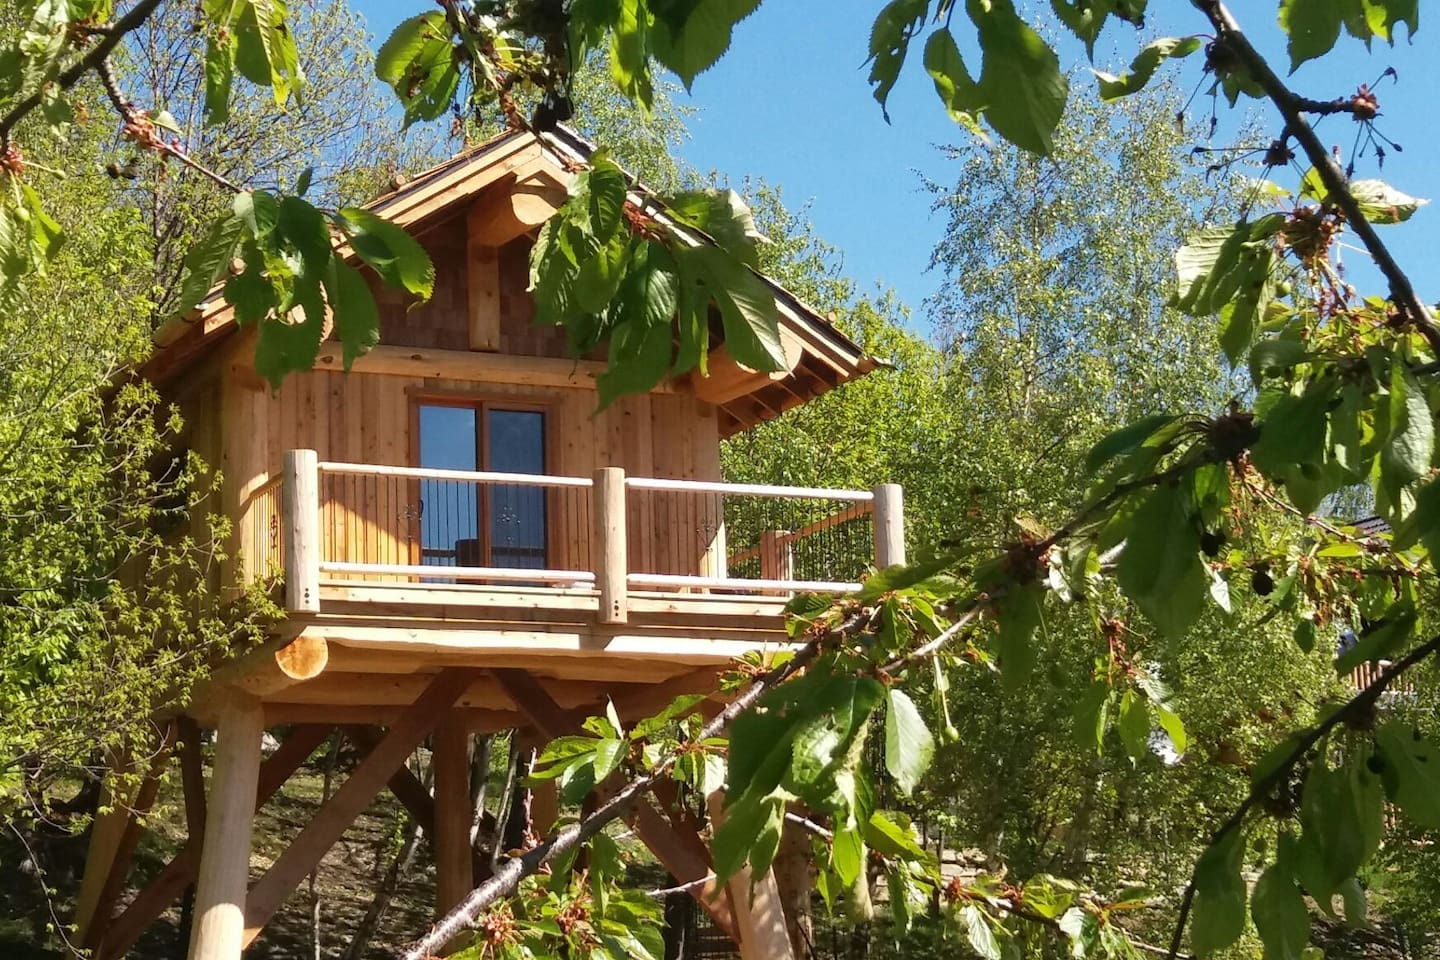 Sleeping in a tree house in italy the hotel map mytripmap - Casa sull albero firenze ...